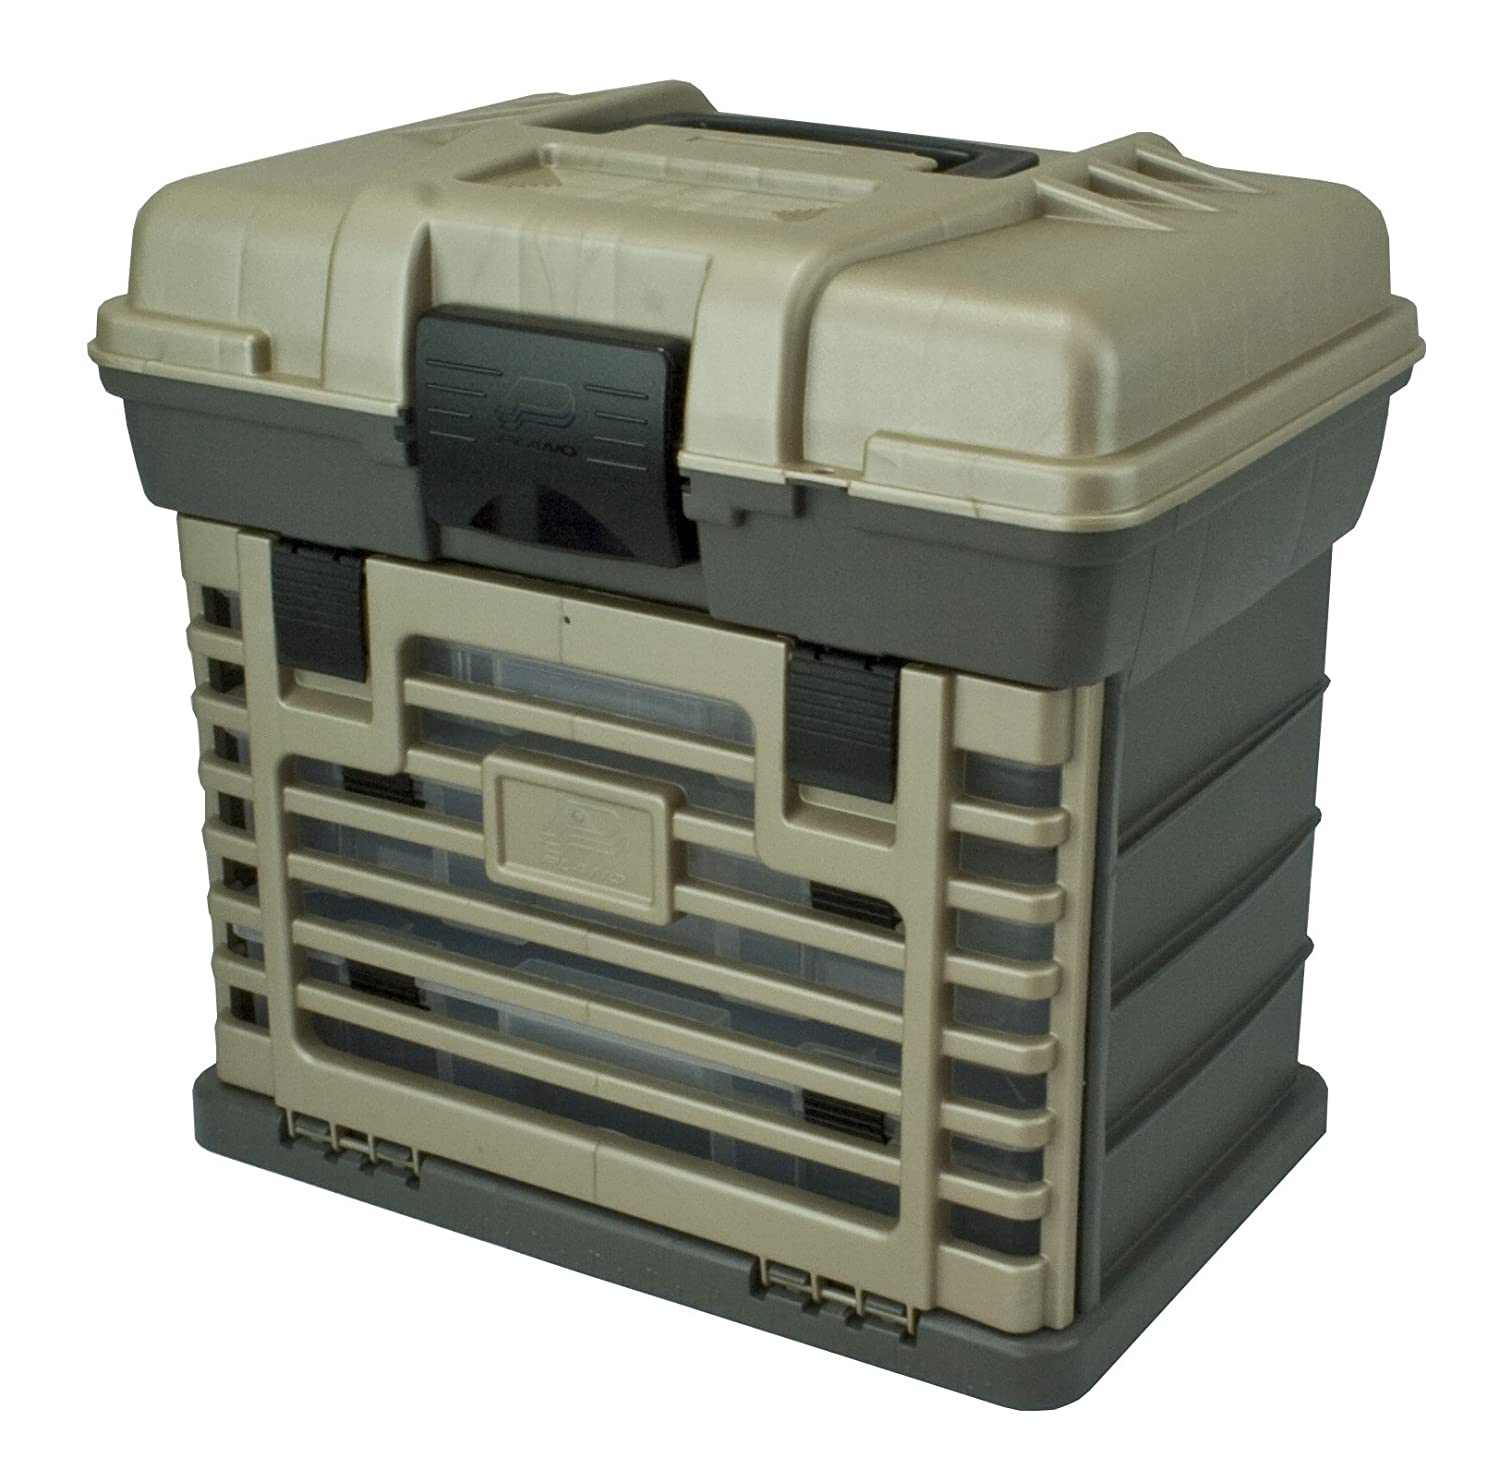 Plano Molding Stow N Go Toolbox Tools Organizer  Graphite Gray and Sandstone